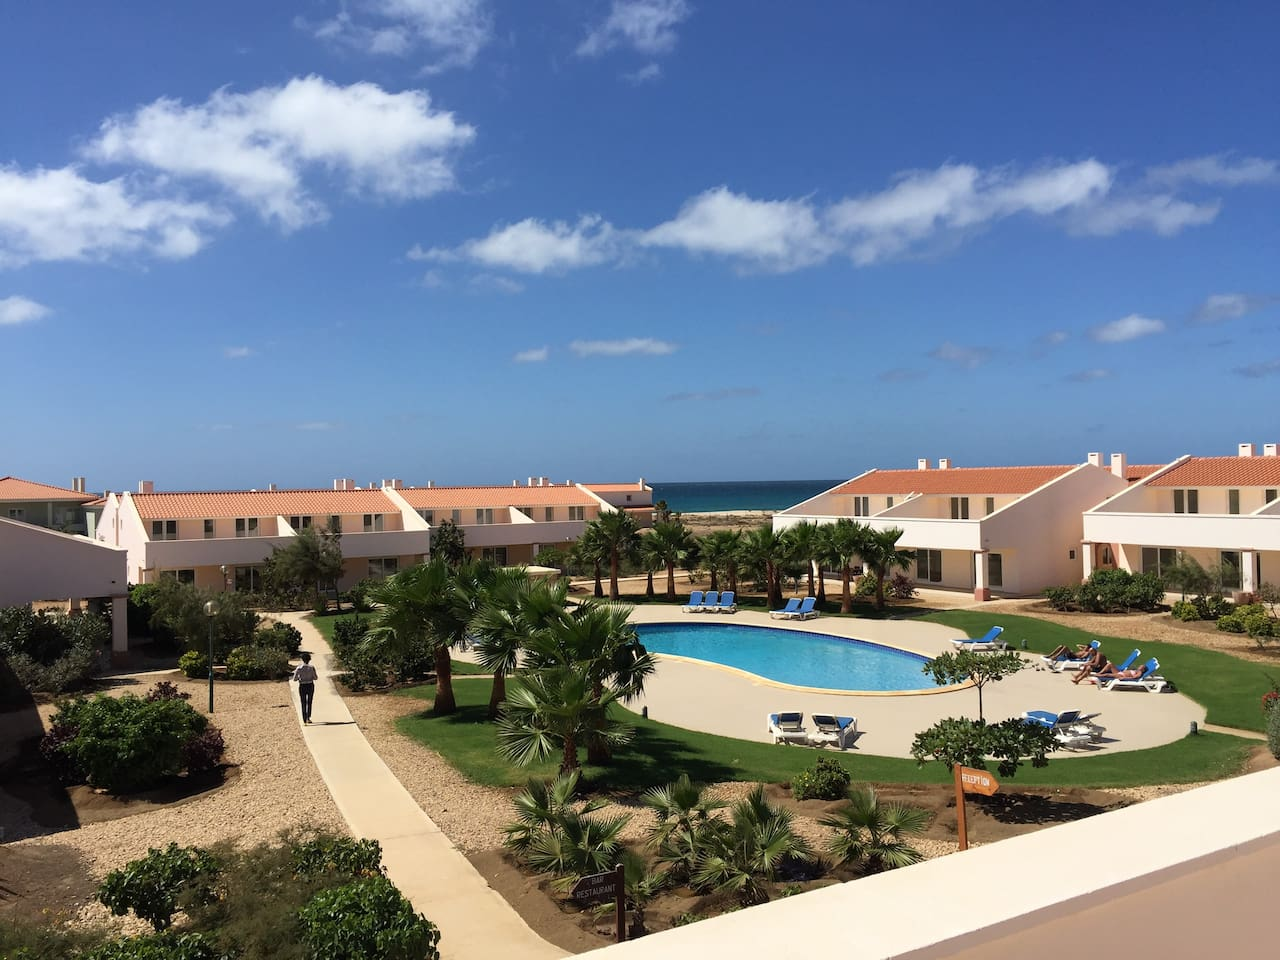 Stunning 3 bed villa with sea and pool views. This is the view from the balcony.